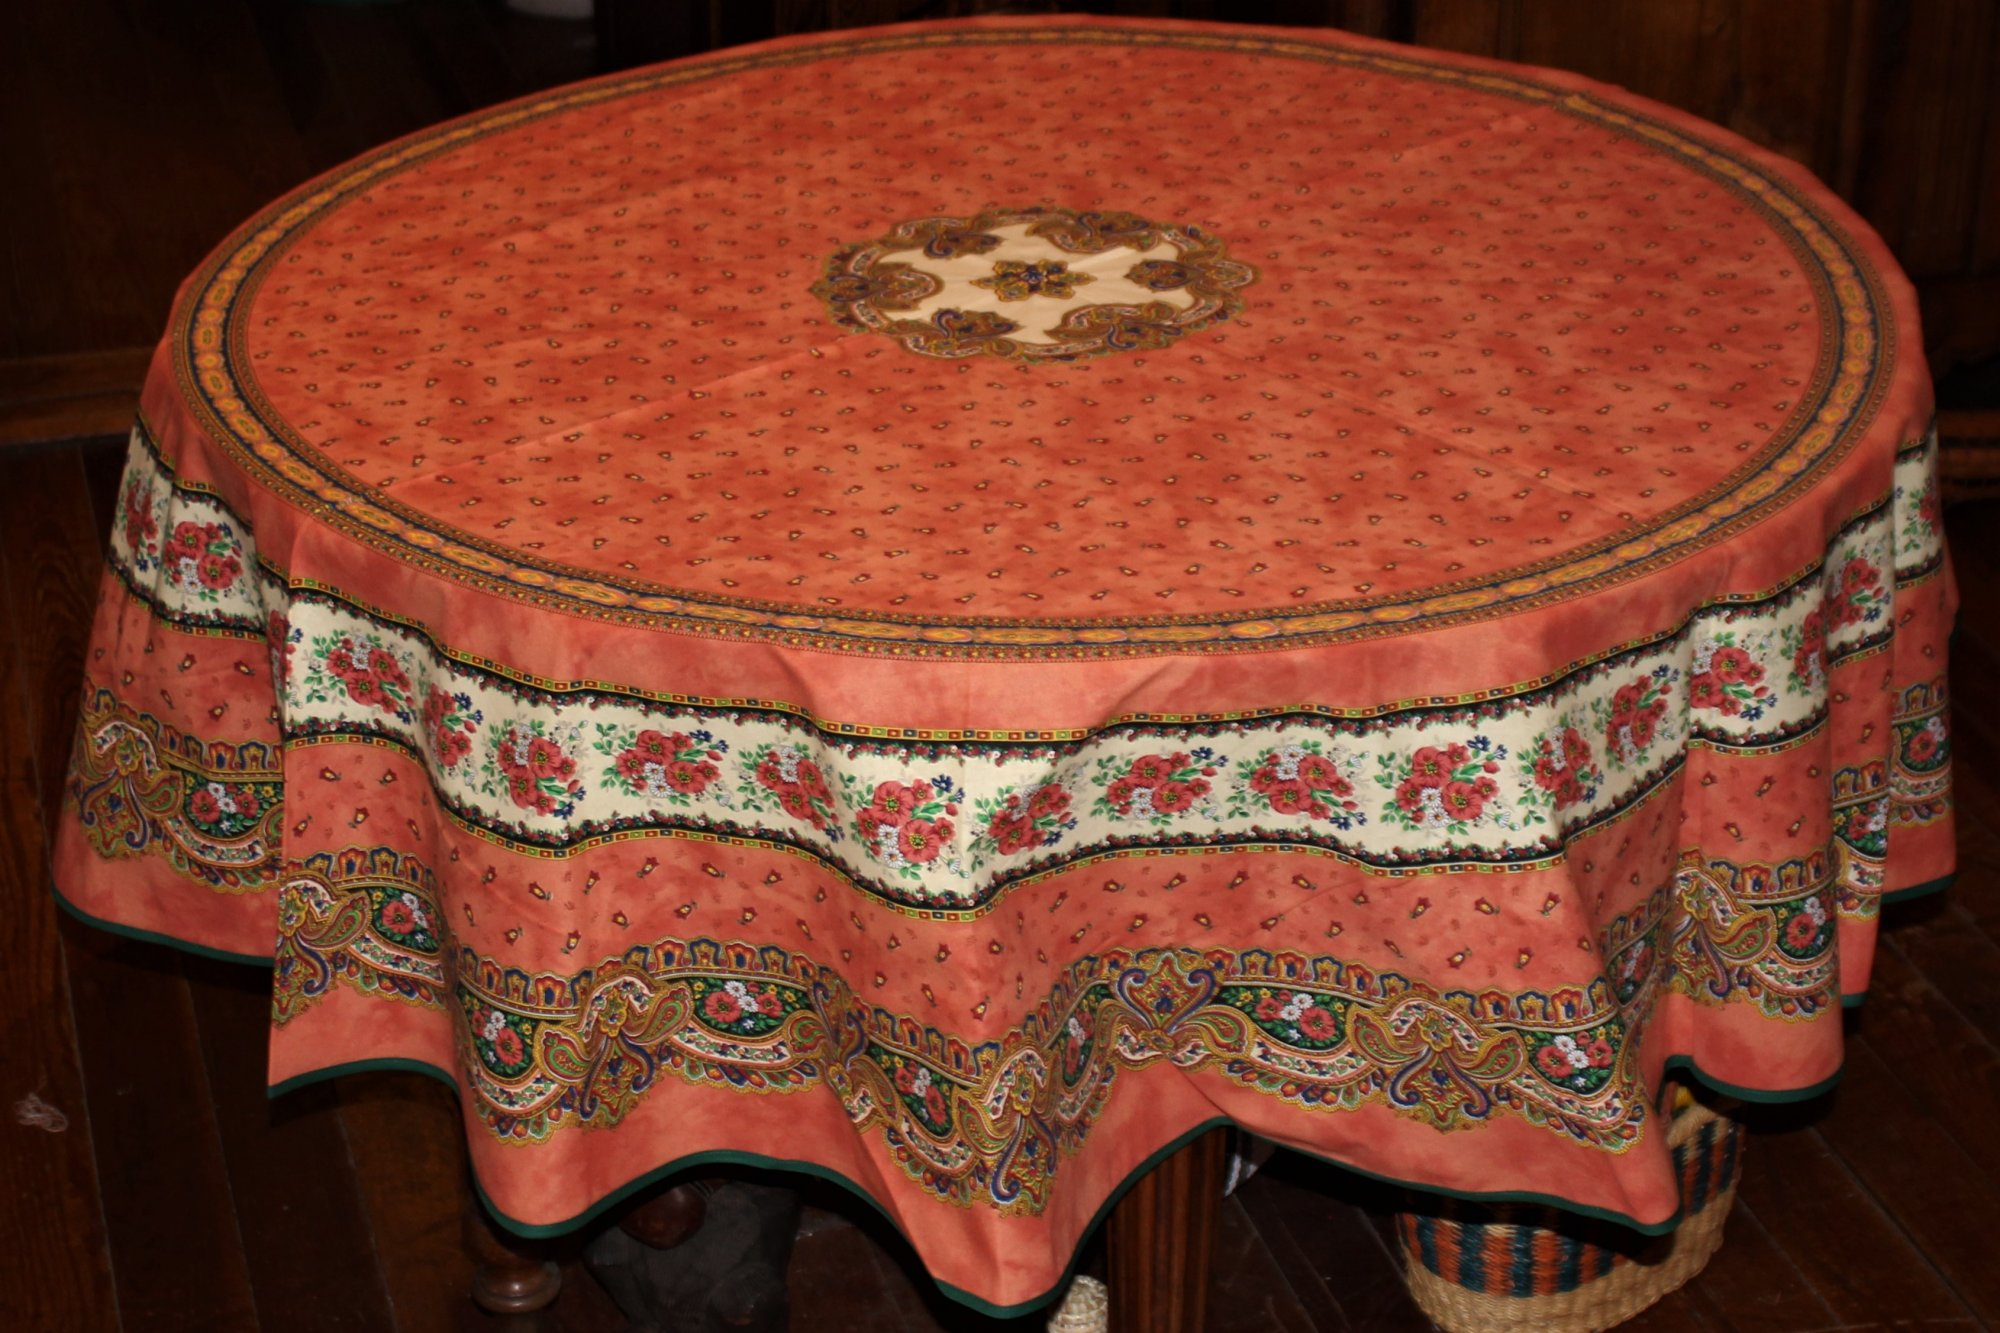 70 French Acrylic-Coated Round Tablecloth Tradition (Salmon)